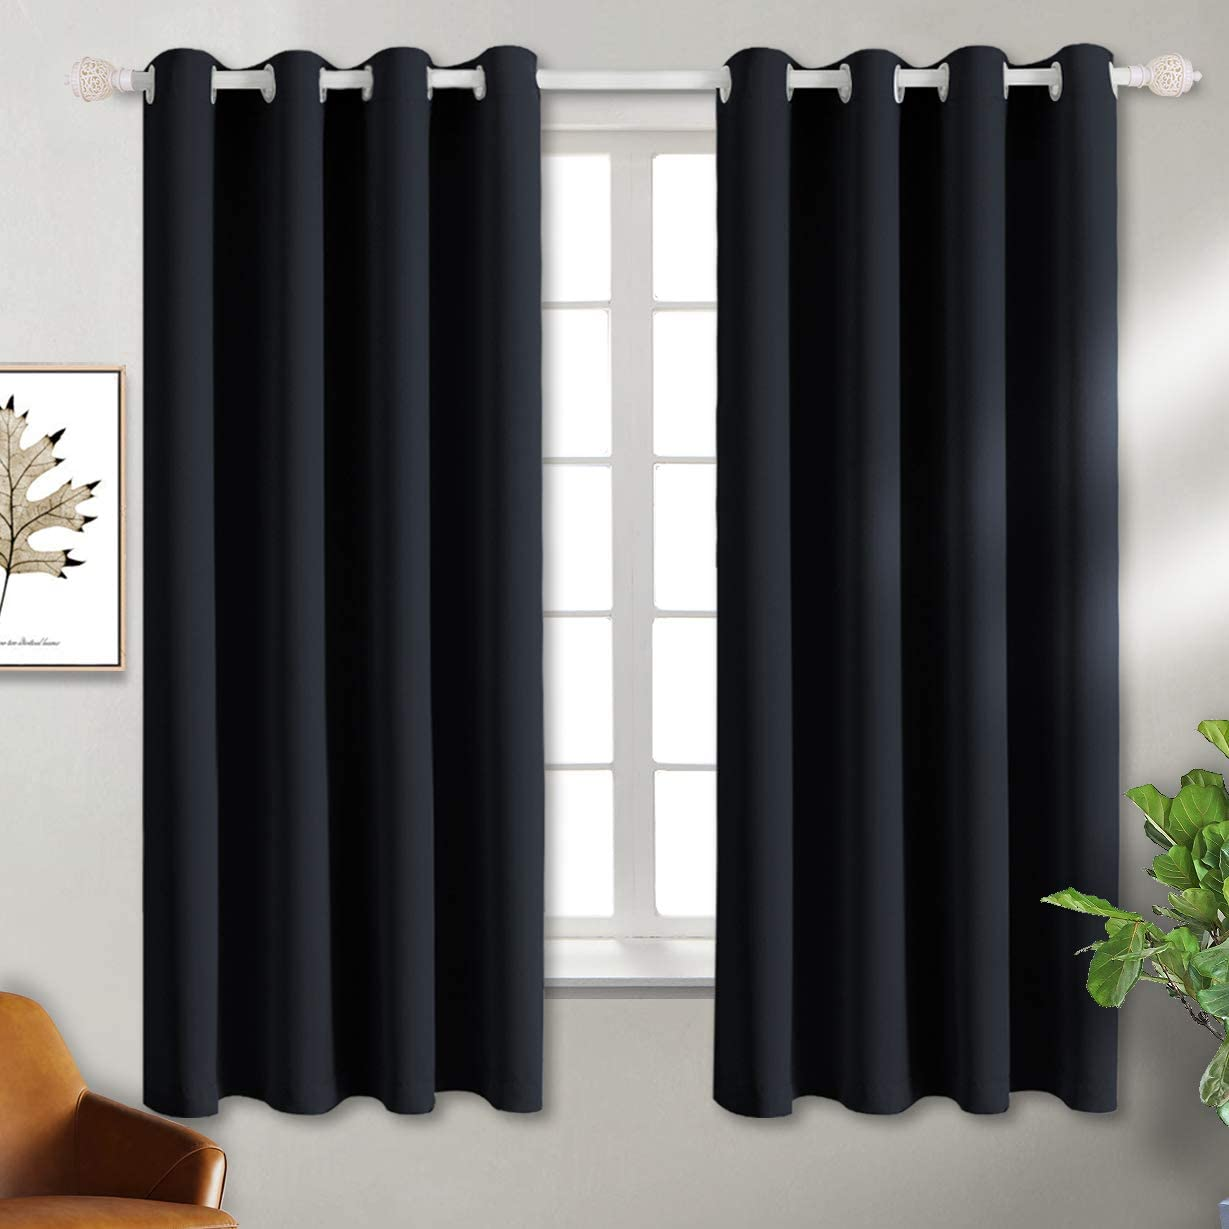 BGment Black Blackout Curtains for Bedroom - Grommet Thermal Insulated Room Darkening Block Out Curtains for Living Room, Set of 2 Panels, 52 x 63 Inch